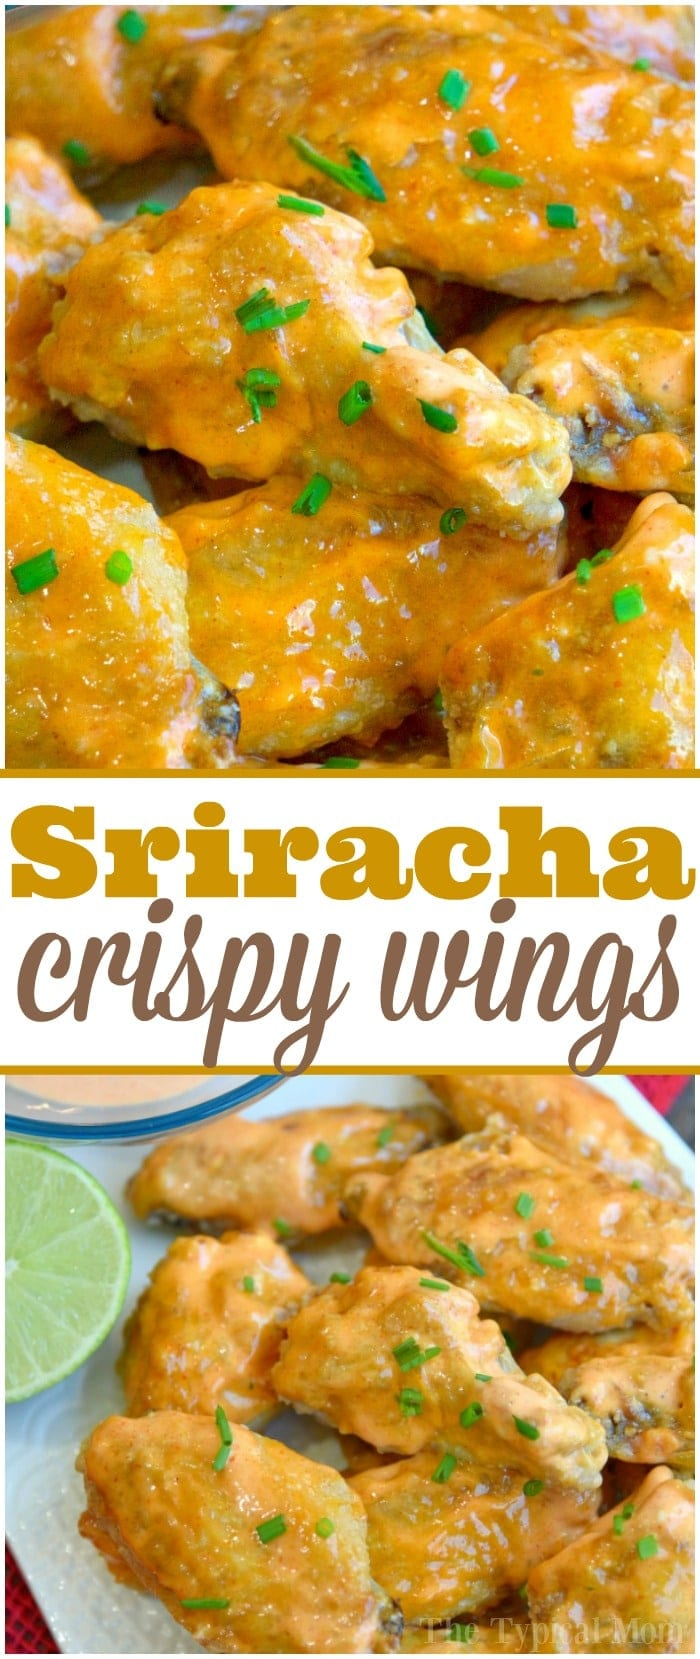 This is the best way to make a batch of sweet Sriracha baked chicken wings! The perfect appetizer or meal that's easy to make. These baked chicken wings are crispy and moist using this trick and the sauce is amazing with just the right sweet and heat you want. #chicken #wings #baked #sriracha #spicy #hot #sweet #crispy